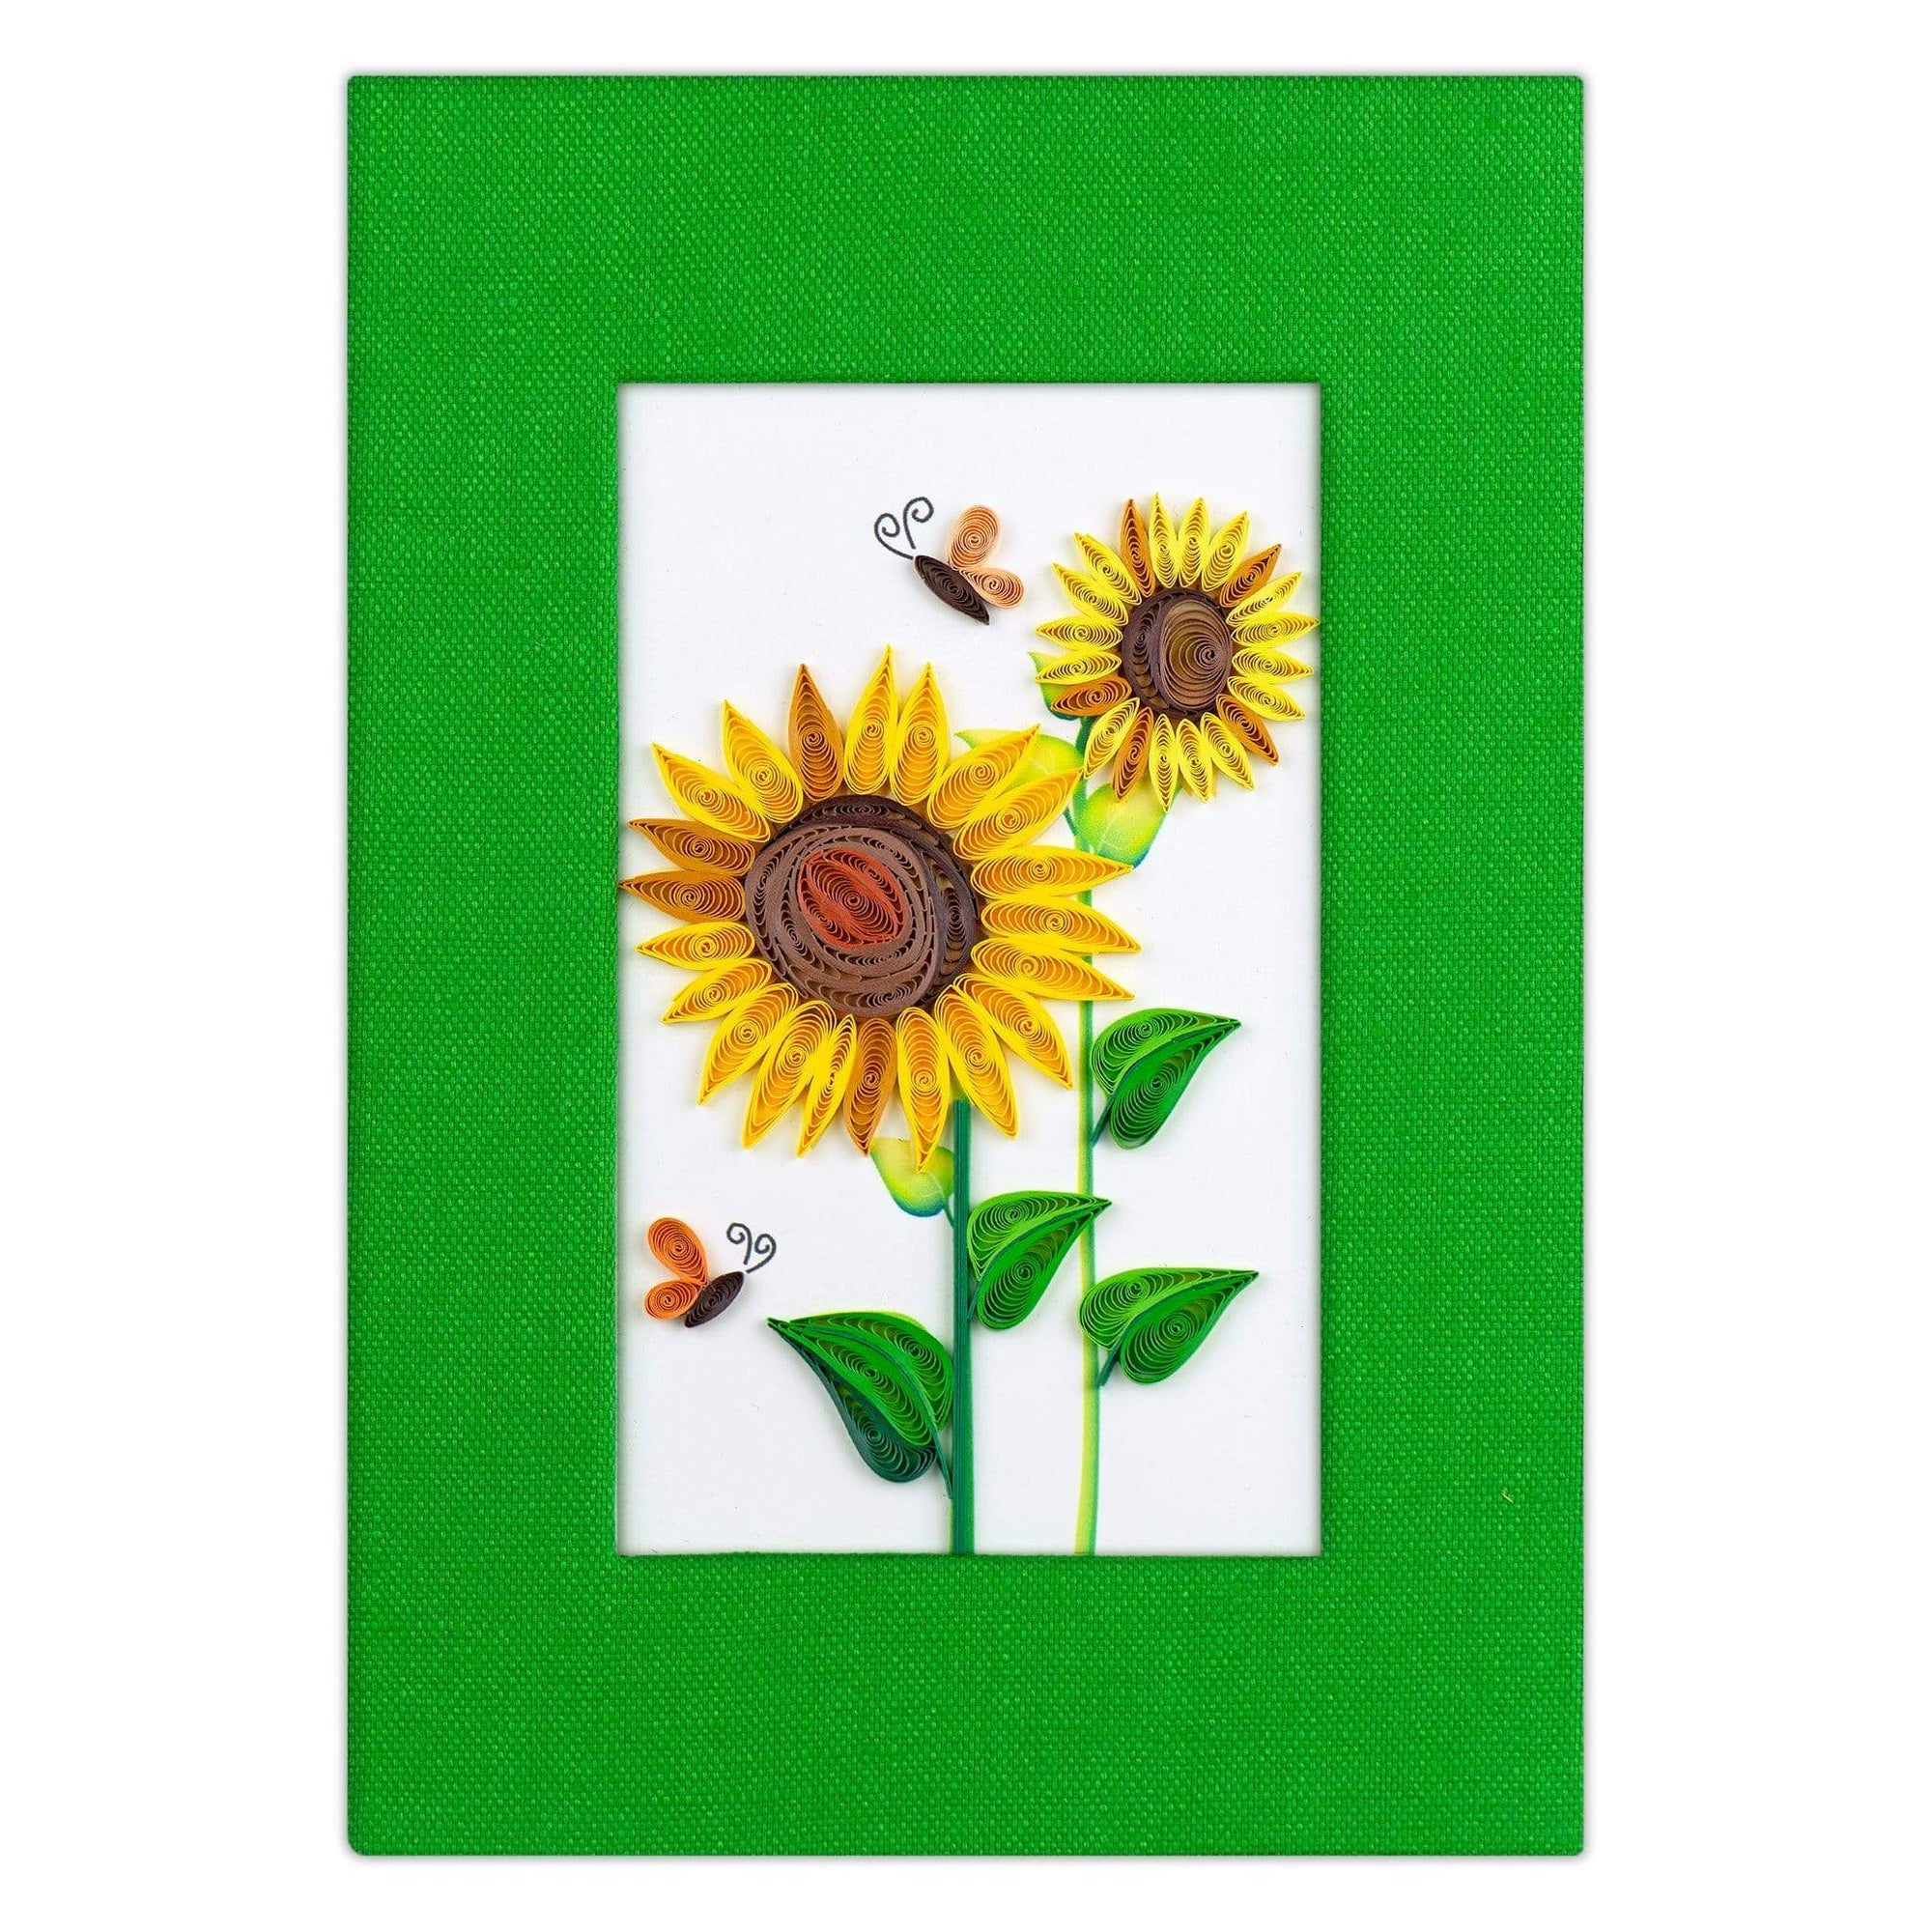 Sunflower Journal - Green